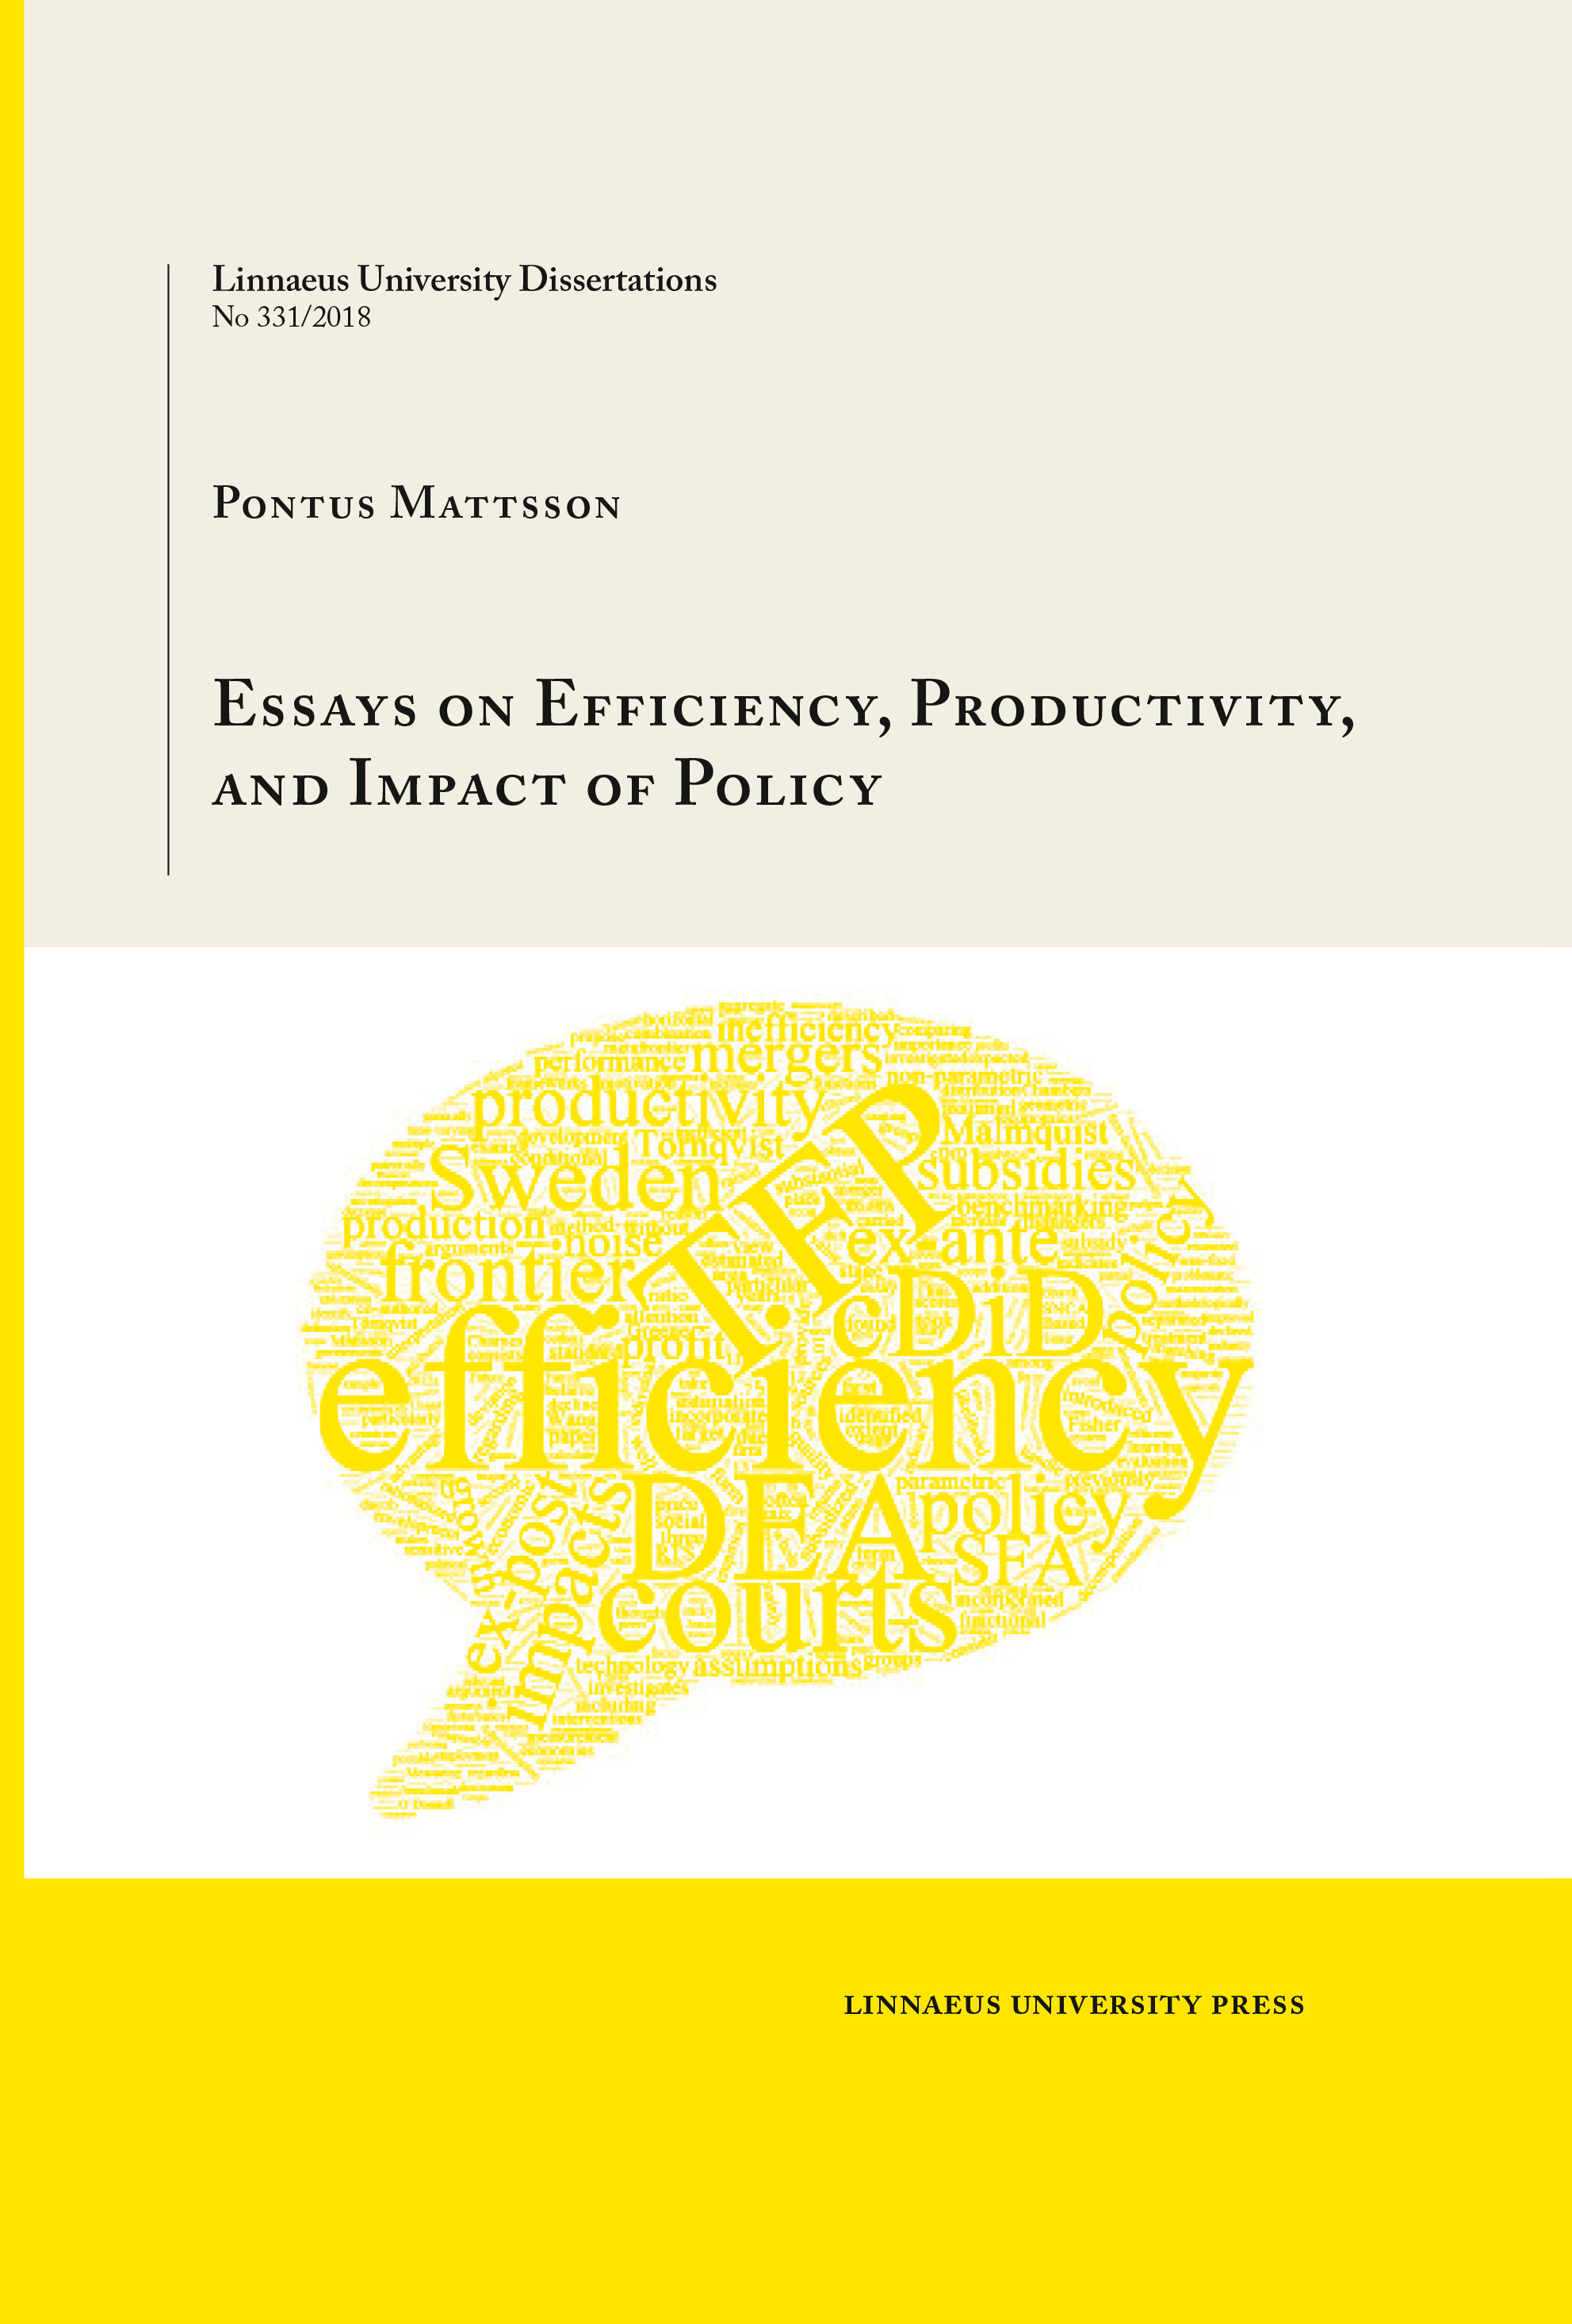 Essays on Efficiency, Productivity, and Impact of Policy